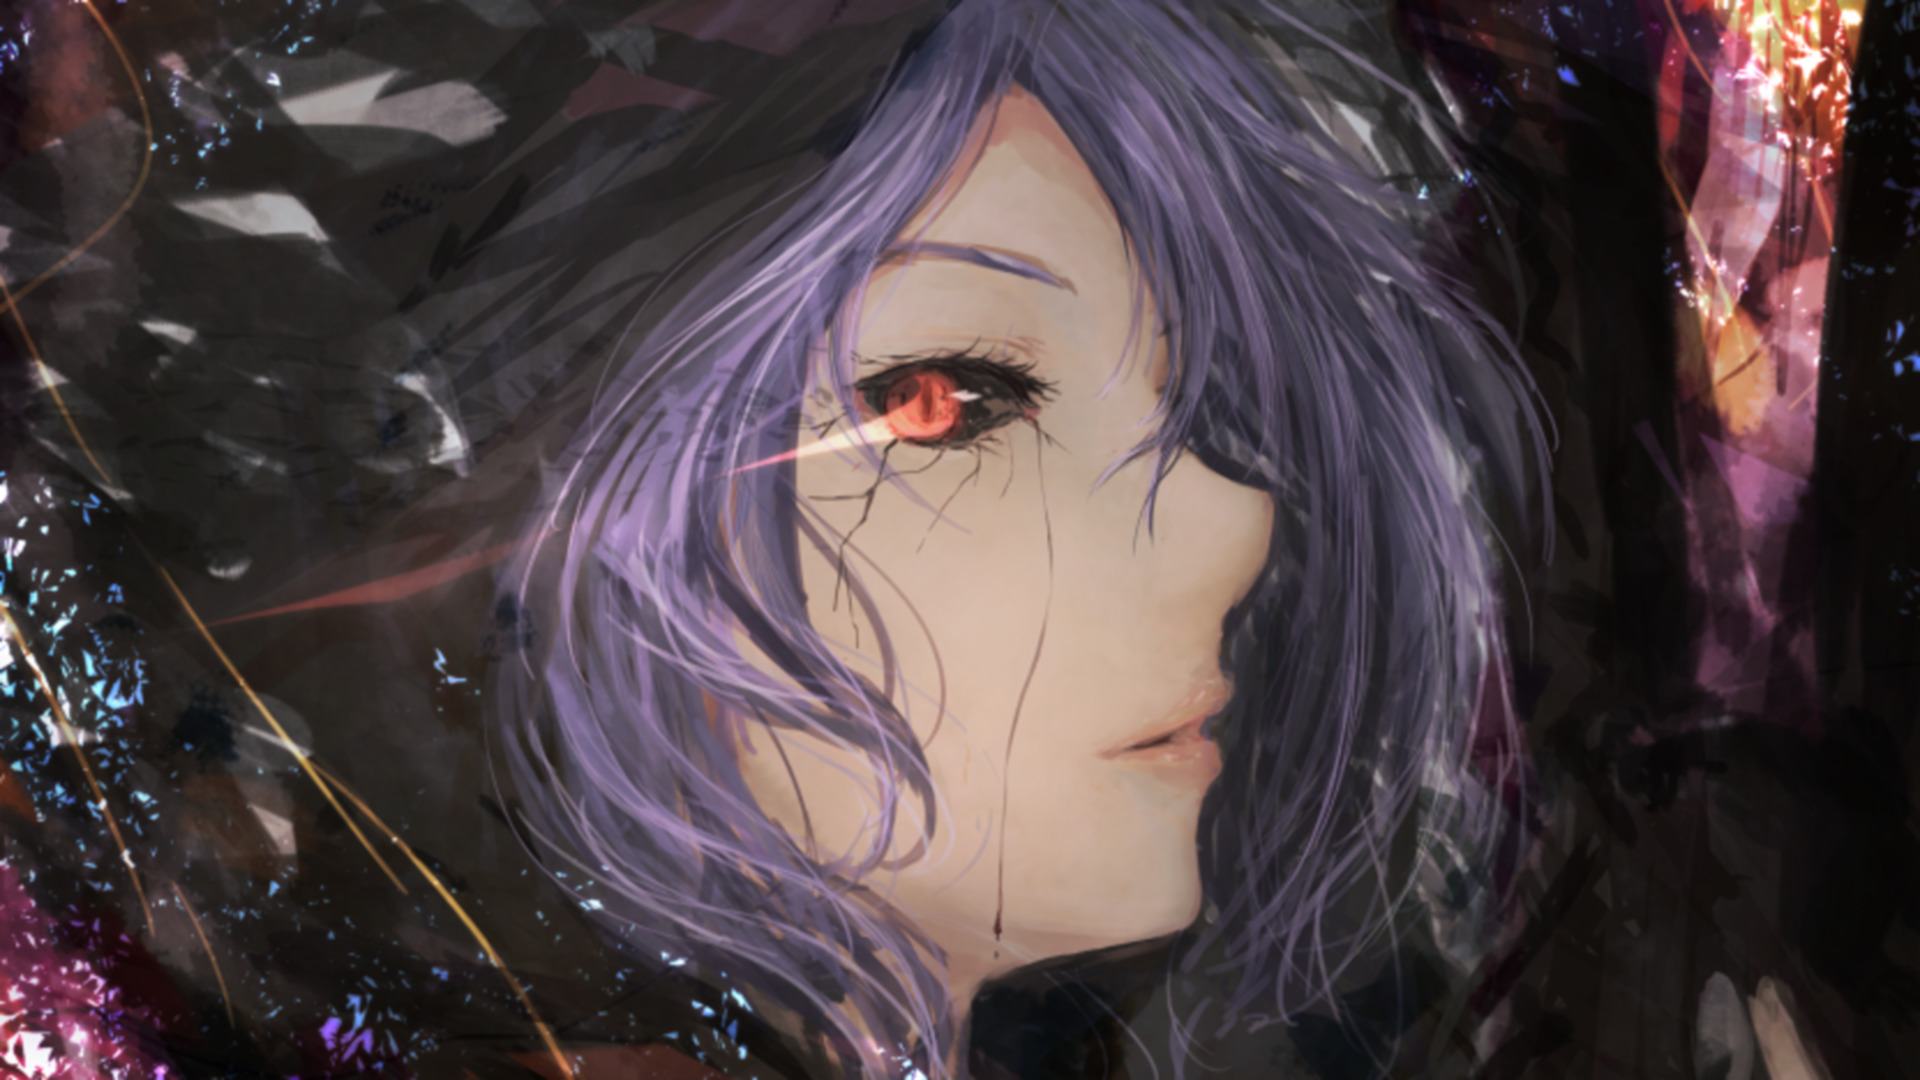 Sad Love Boy And Girl Wallpaper Hd Fantasy Art Tokyo Ghoul Kirishima Touka Anime Girls